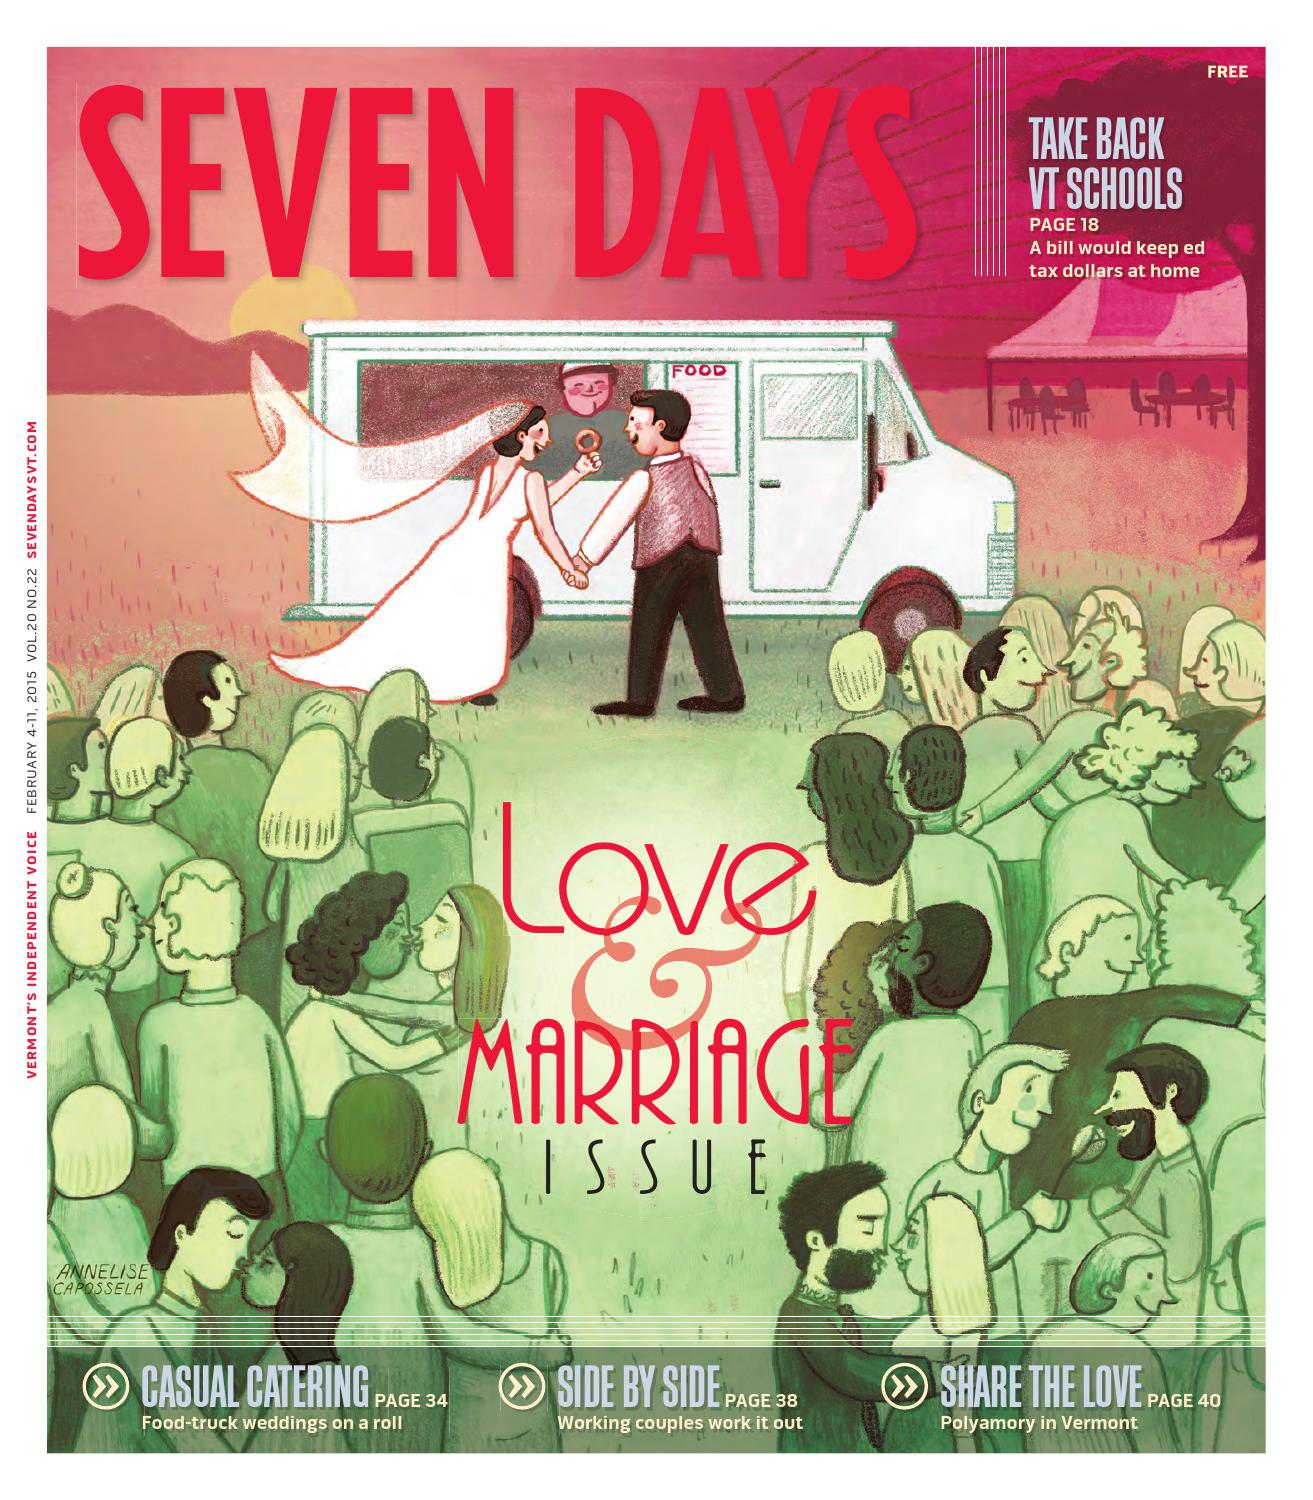 Seven days february 4 2015 by seven days issuu fandeluxe Images